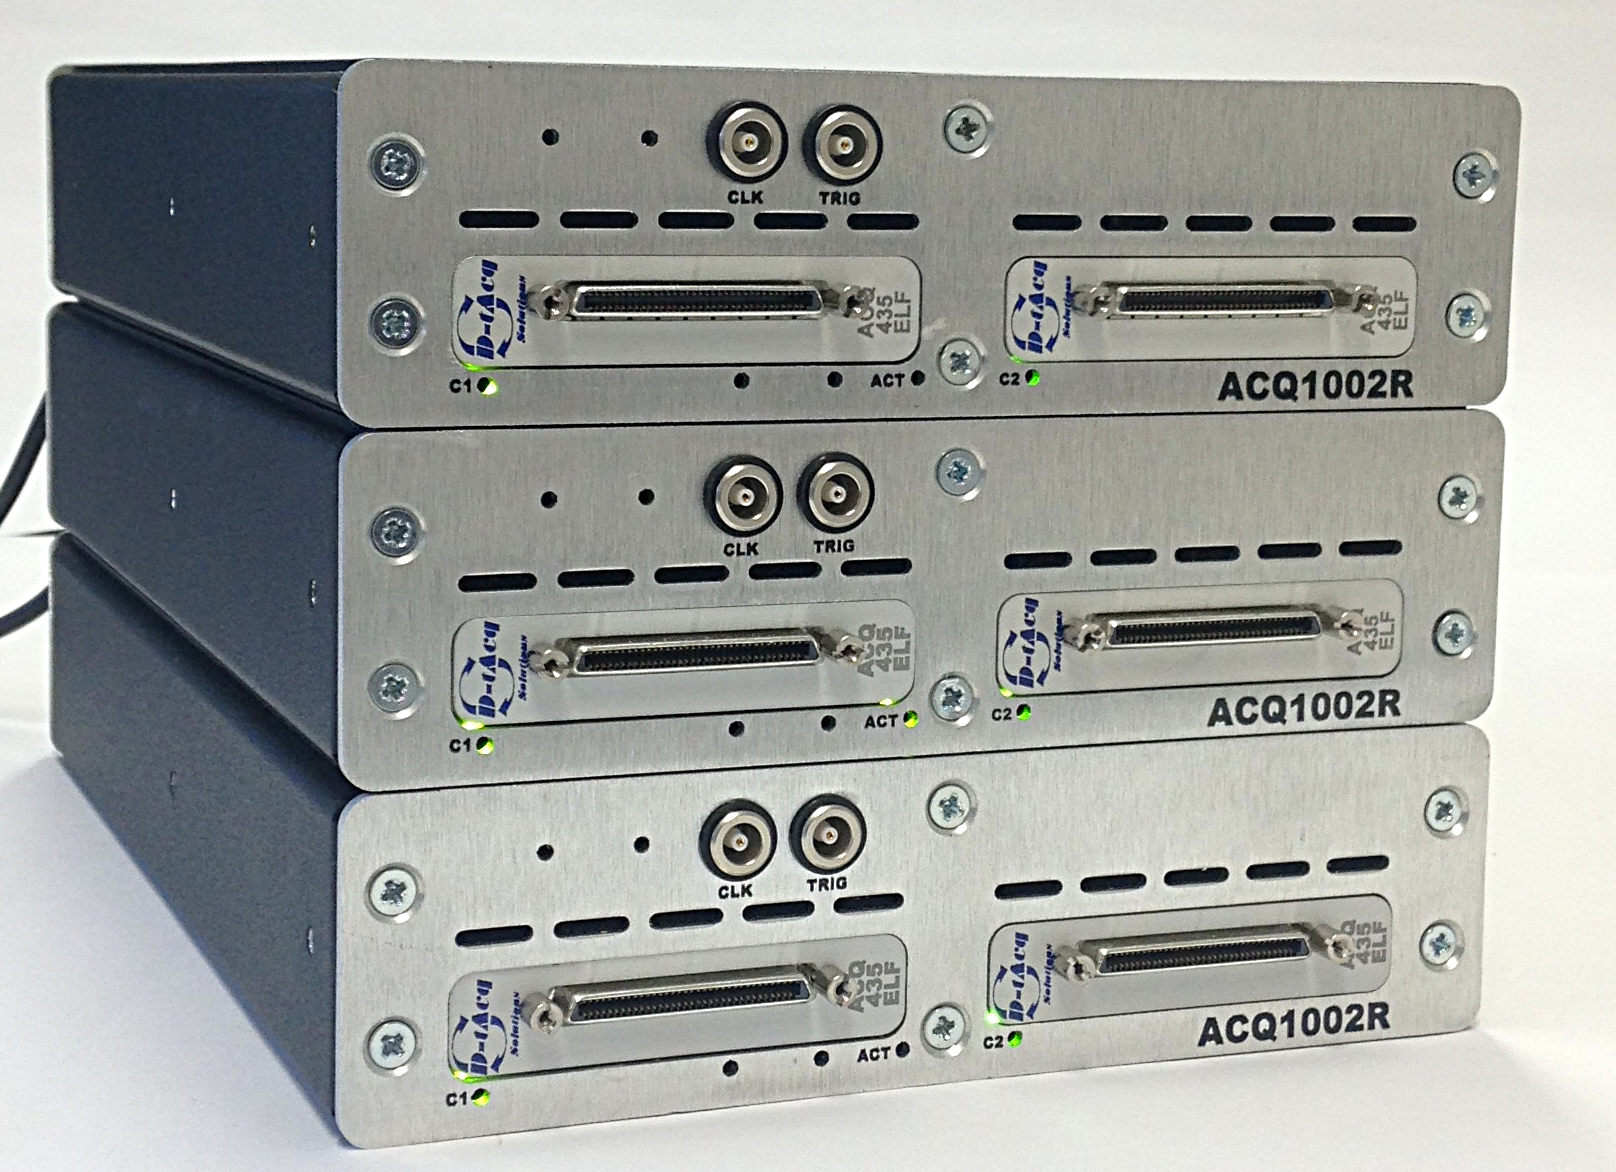 3 x ACQ1002R units stacked for testing